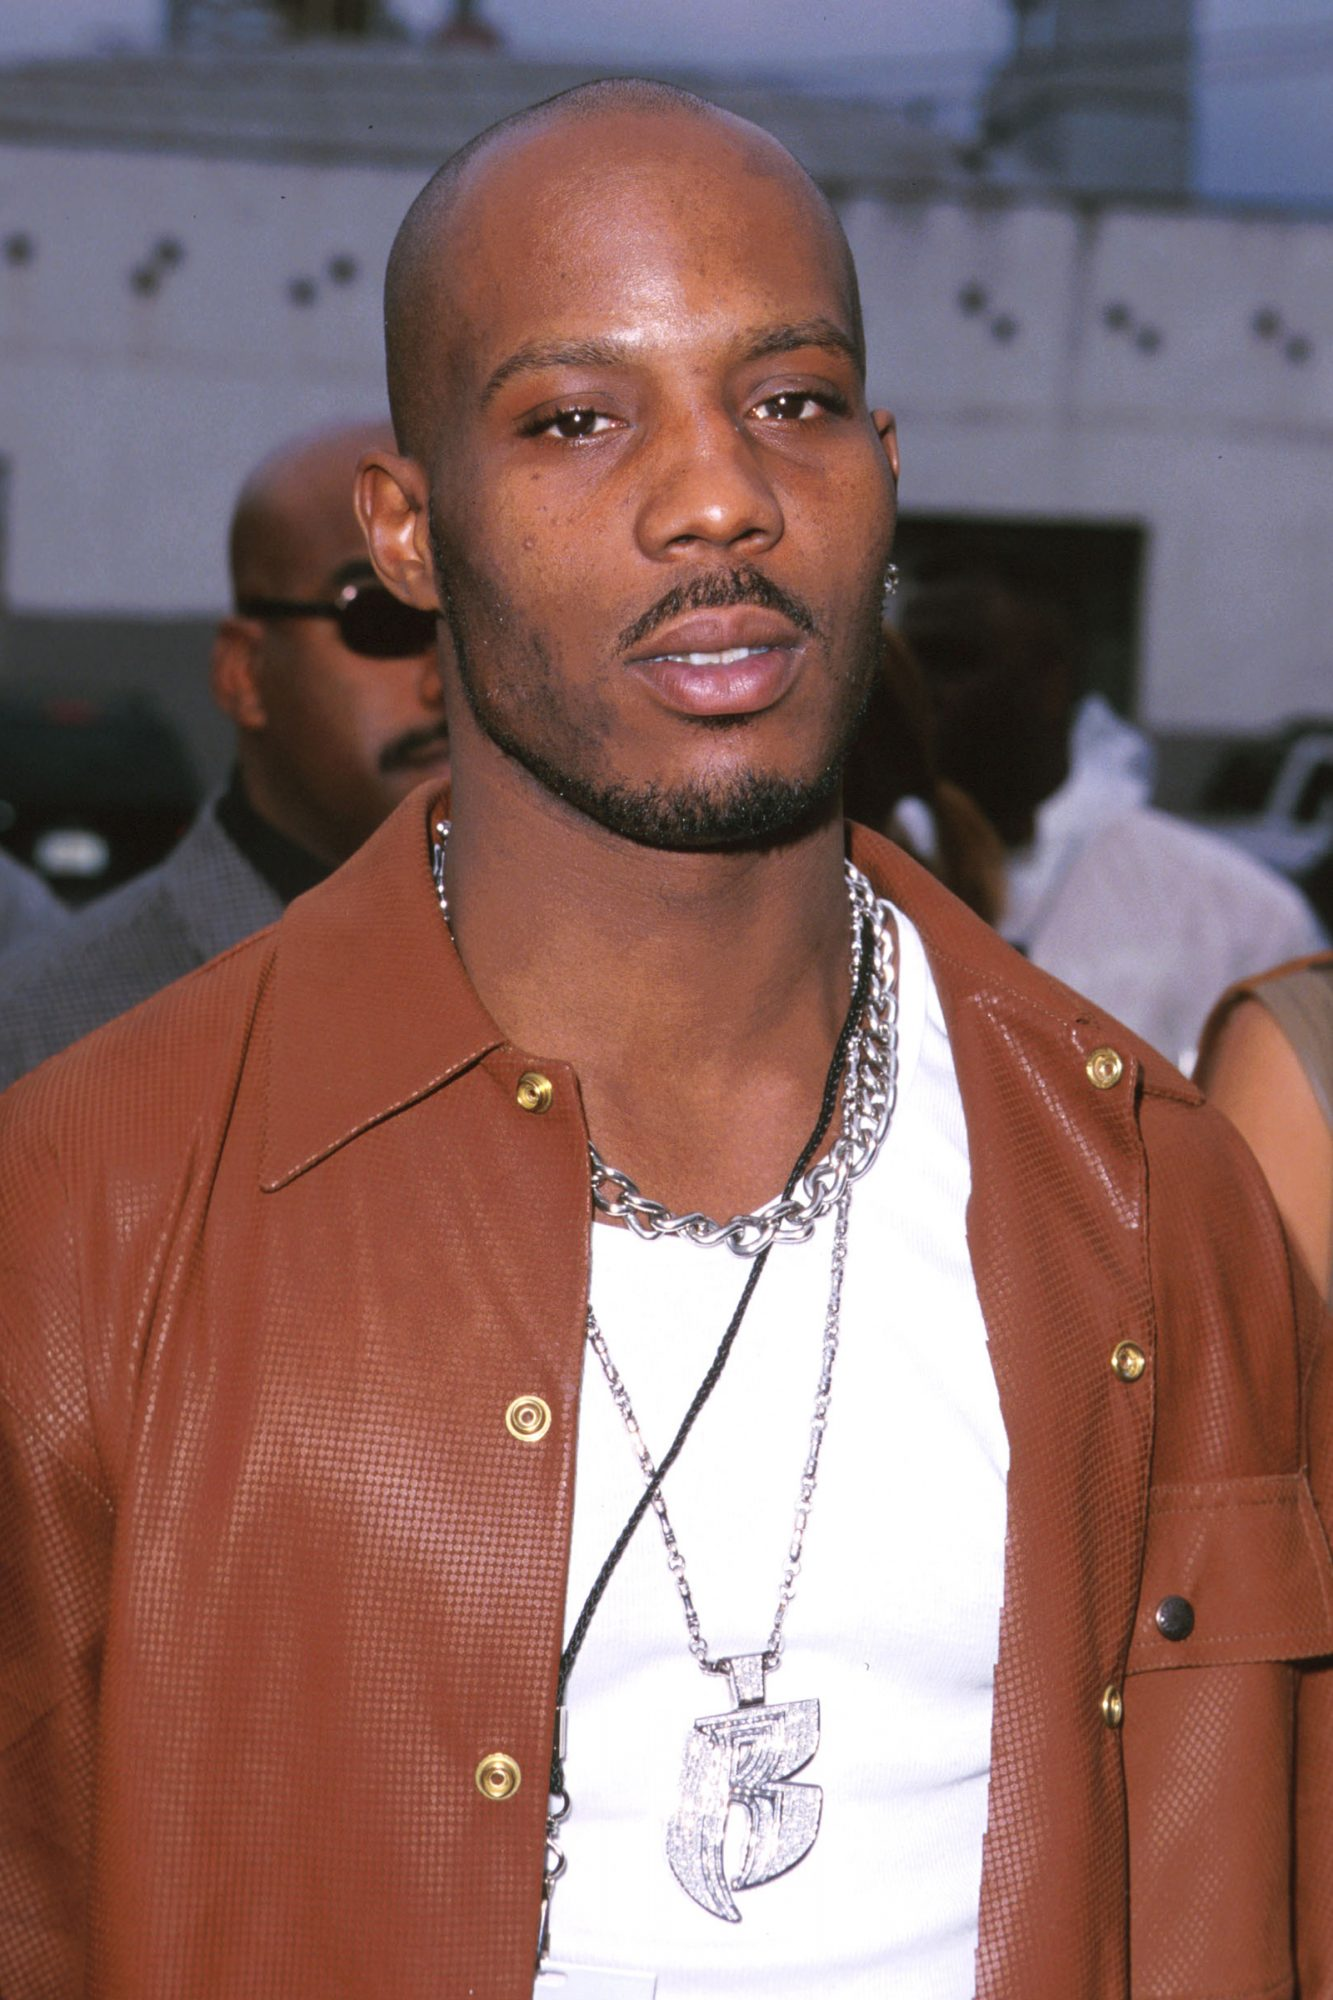 DMX during The 14th Annual Soul Train Music Awards at Shrine Auditorium in Los Angeles, California